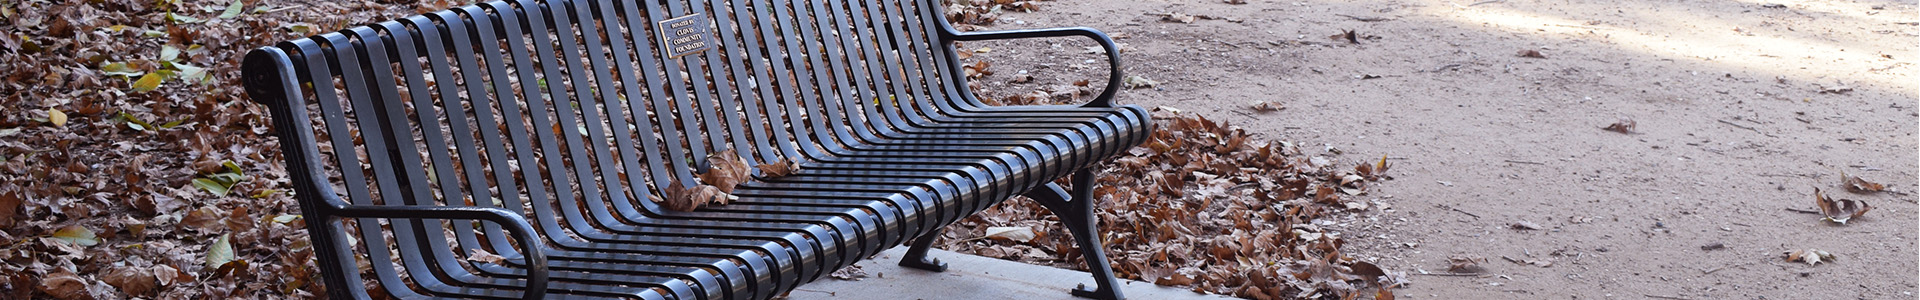 An image of a park bench